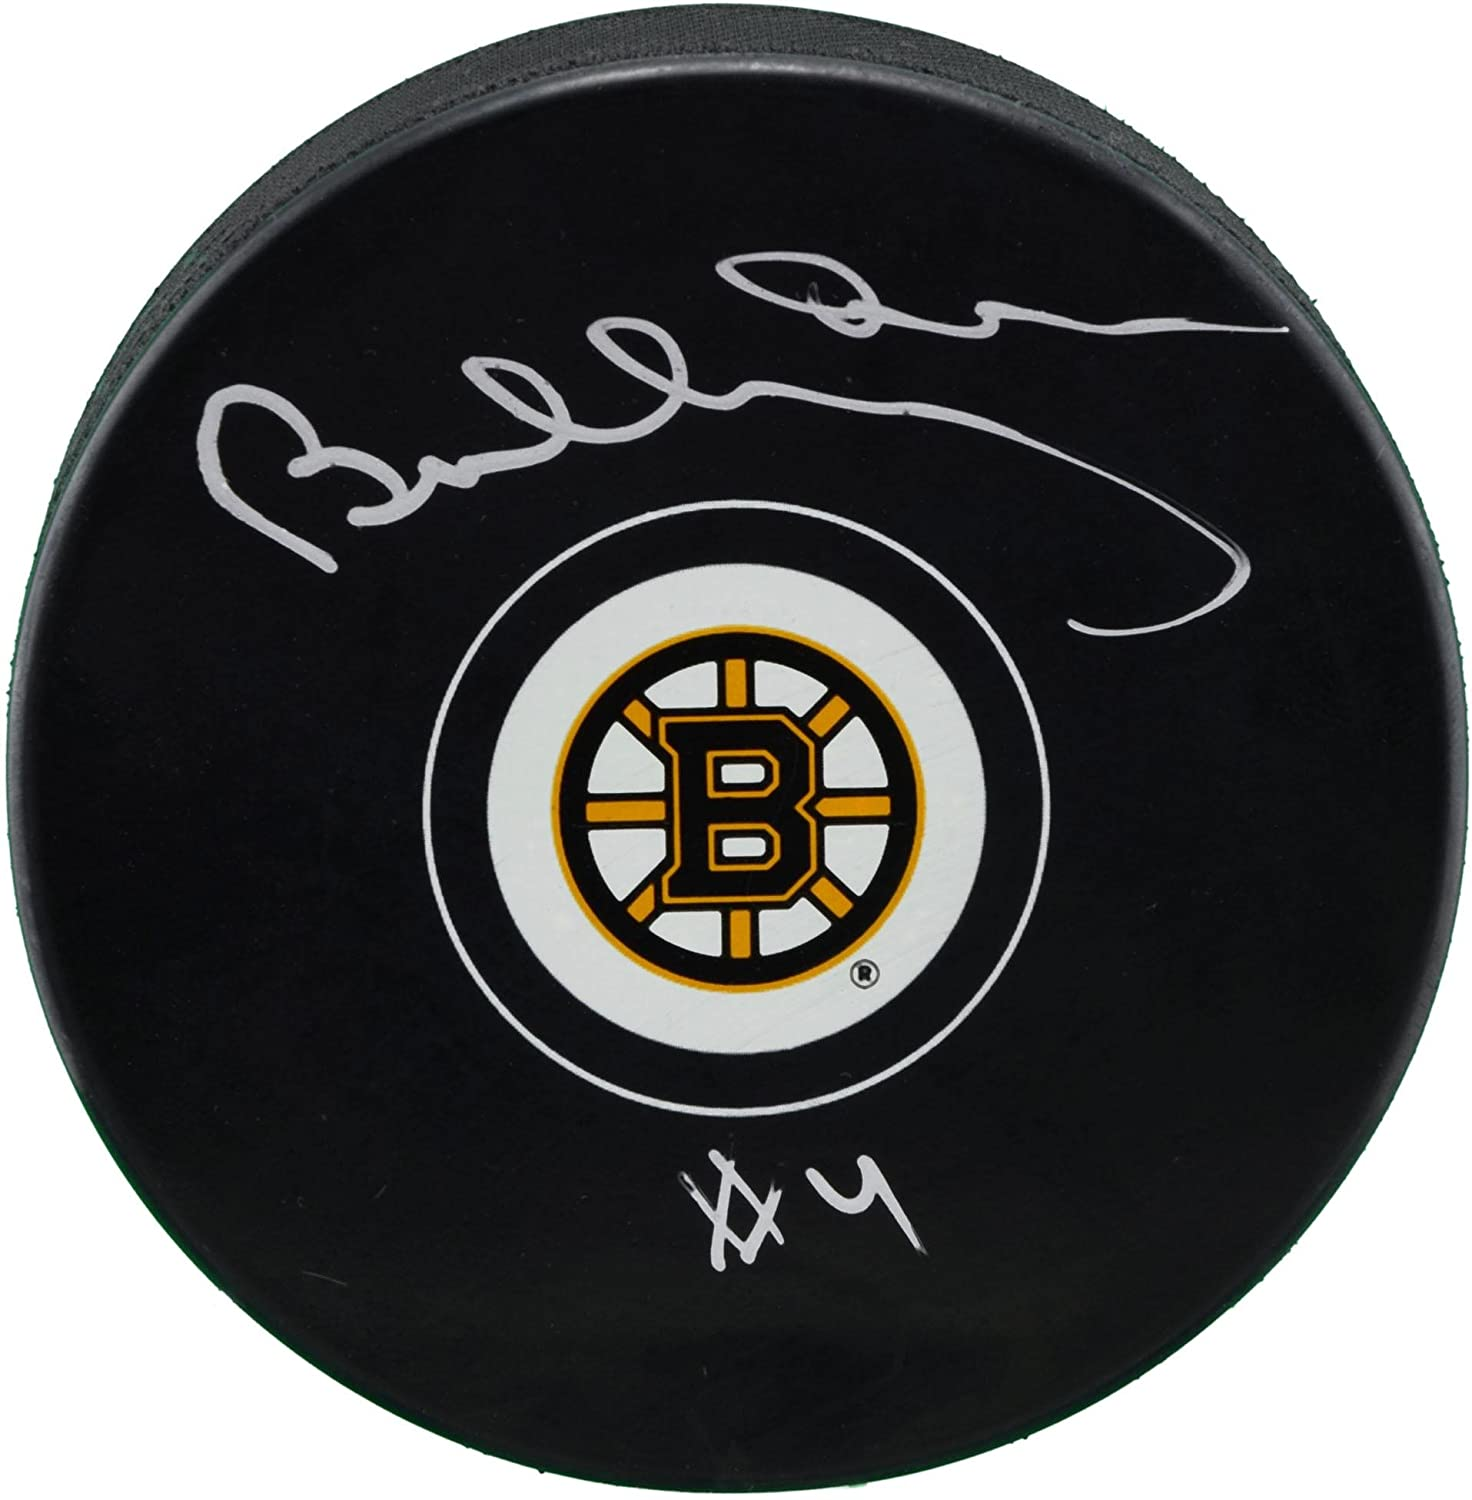 Bobby Orr Boston Bruins Autographed Hockey Puck - Fanatics Authentic Certified - Autographed NHL Pucks